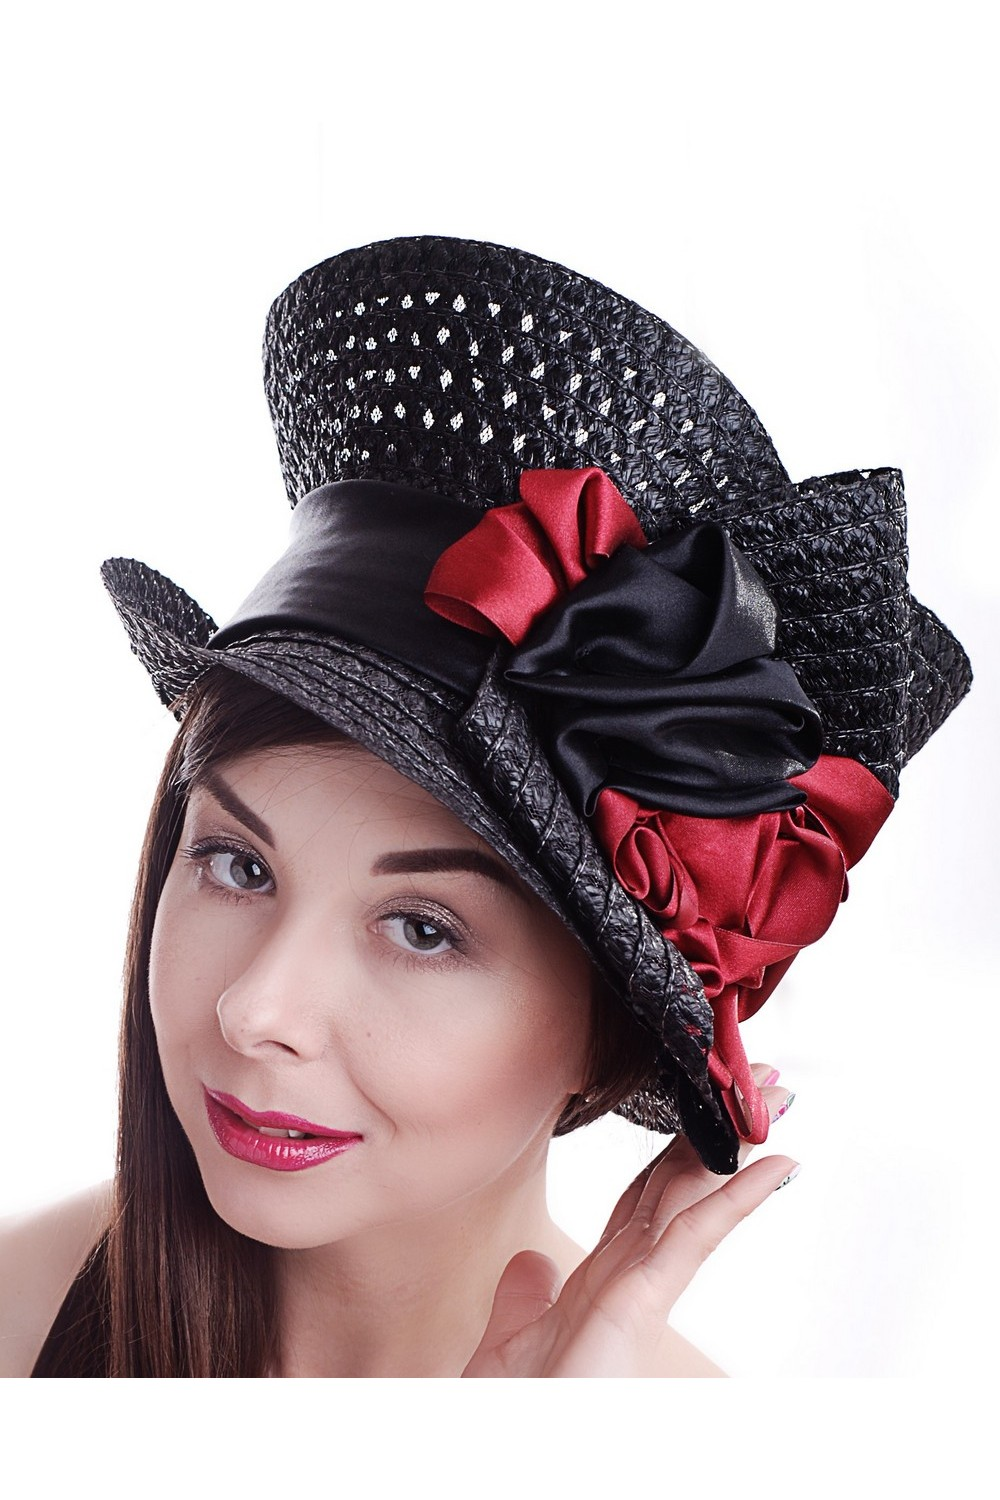 Buy Summer women's black hat, Exclusive unique stylish hat for casual and holiday